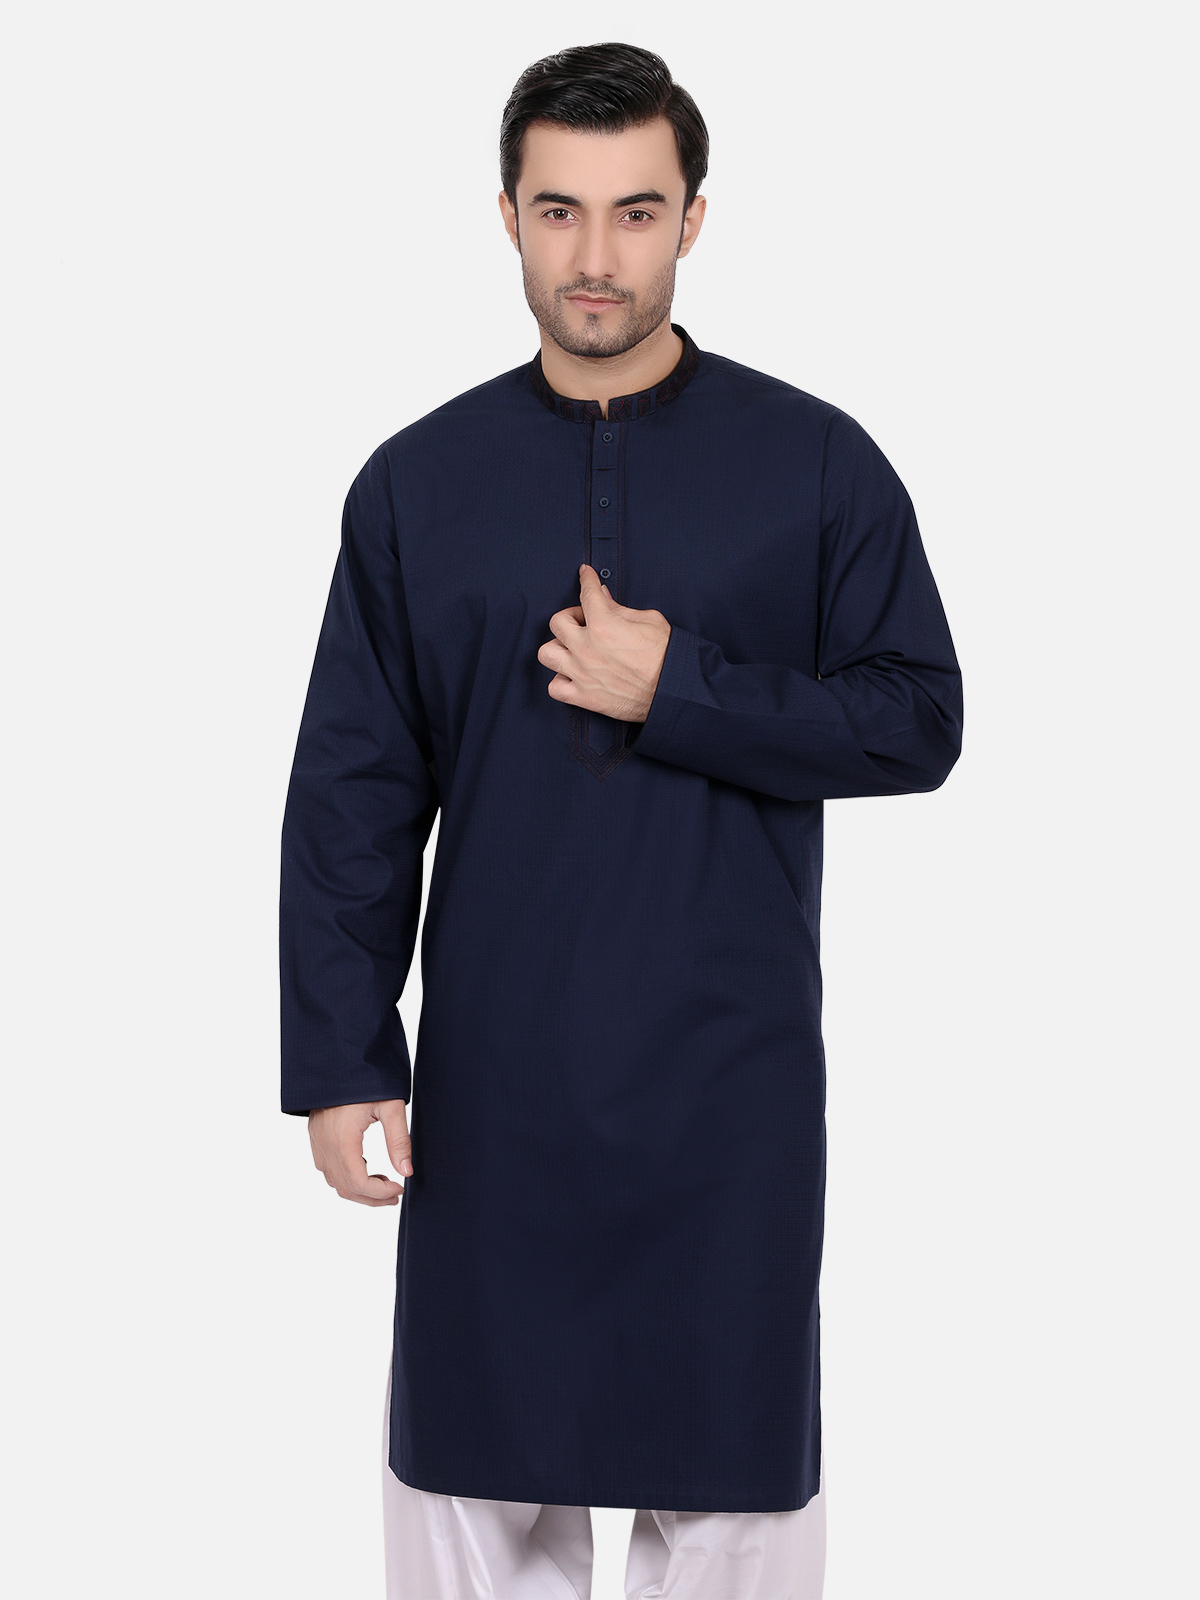 Edenrobe presents the Eid Kurta collection for men 2018